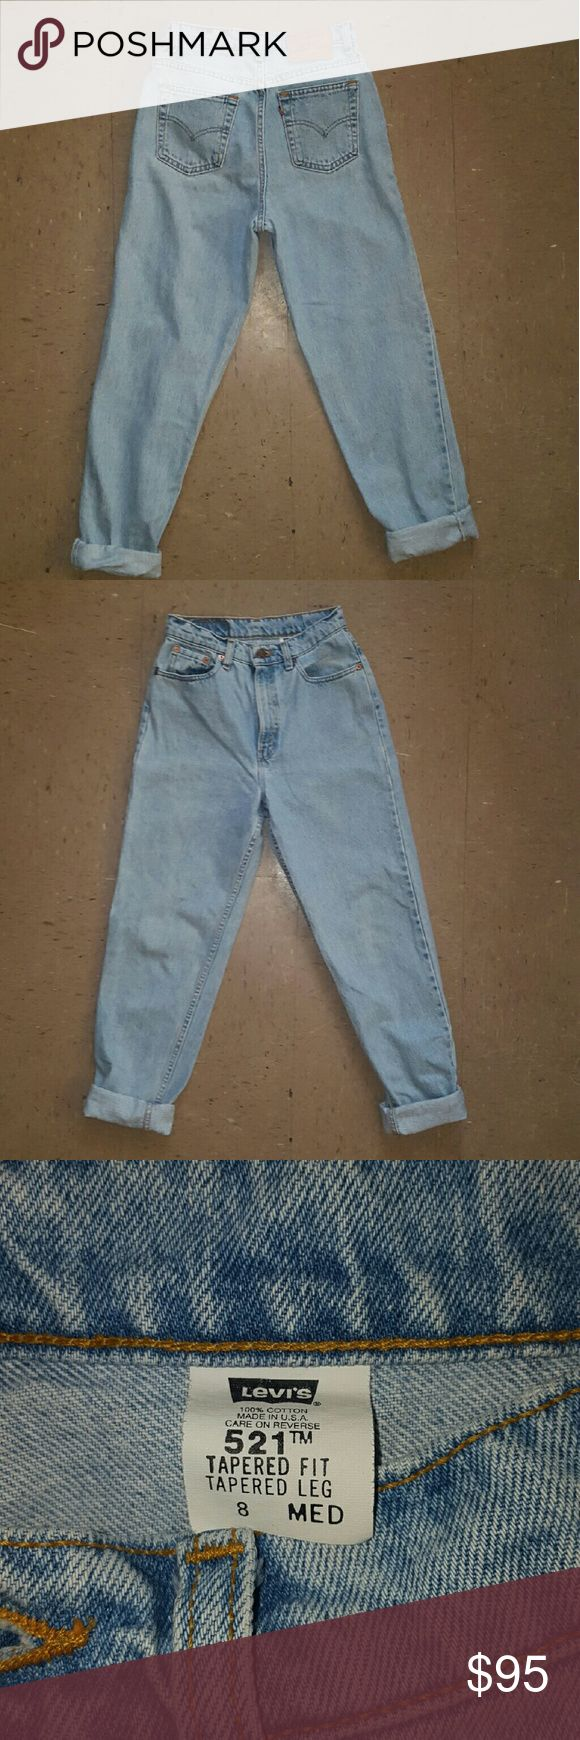 """Vintage Levis 521 High Waisted Mom Jean's 26 Vintage Levis 521 High Waisted Mom Jean's  Size 8 but since they are Vintage they run small.  Waist 13"""" Rise 11.5 Inseam 31  Be sure to check out my other items that are up for sale. You wont be disappointed! Bundle and Save! Levi's Jeans Boyfriend"""